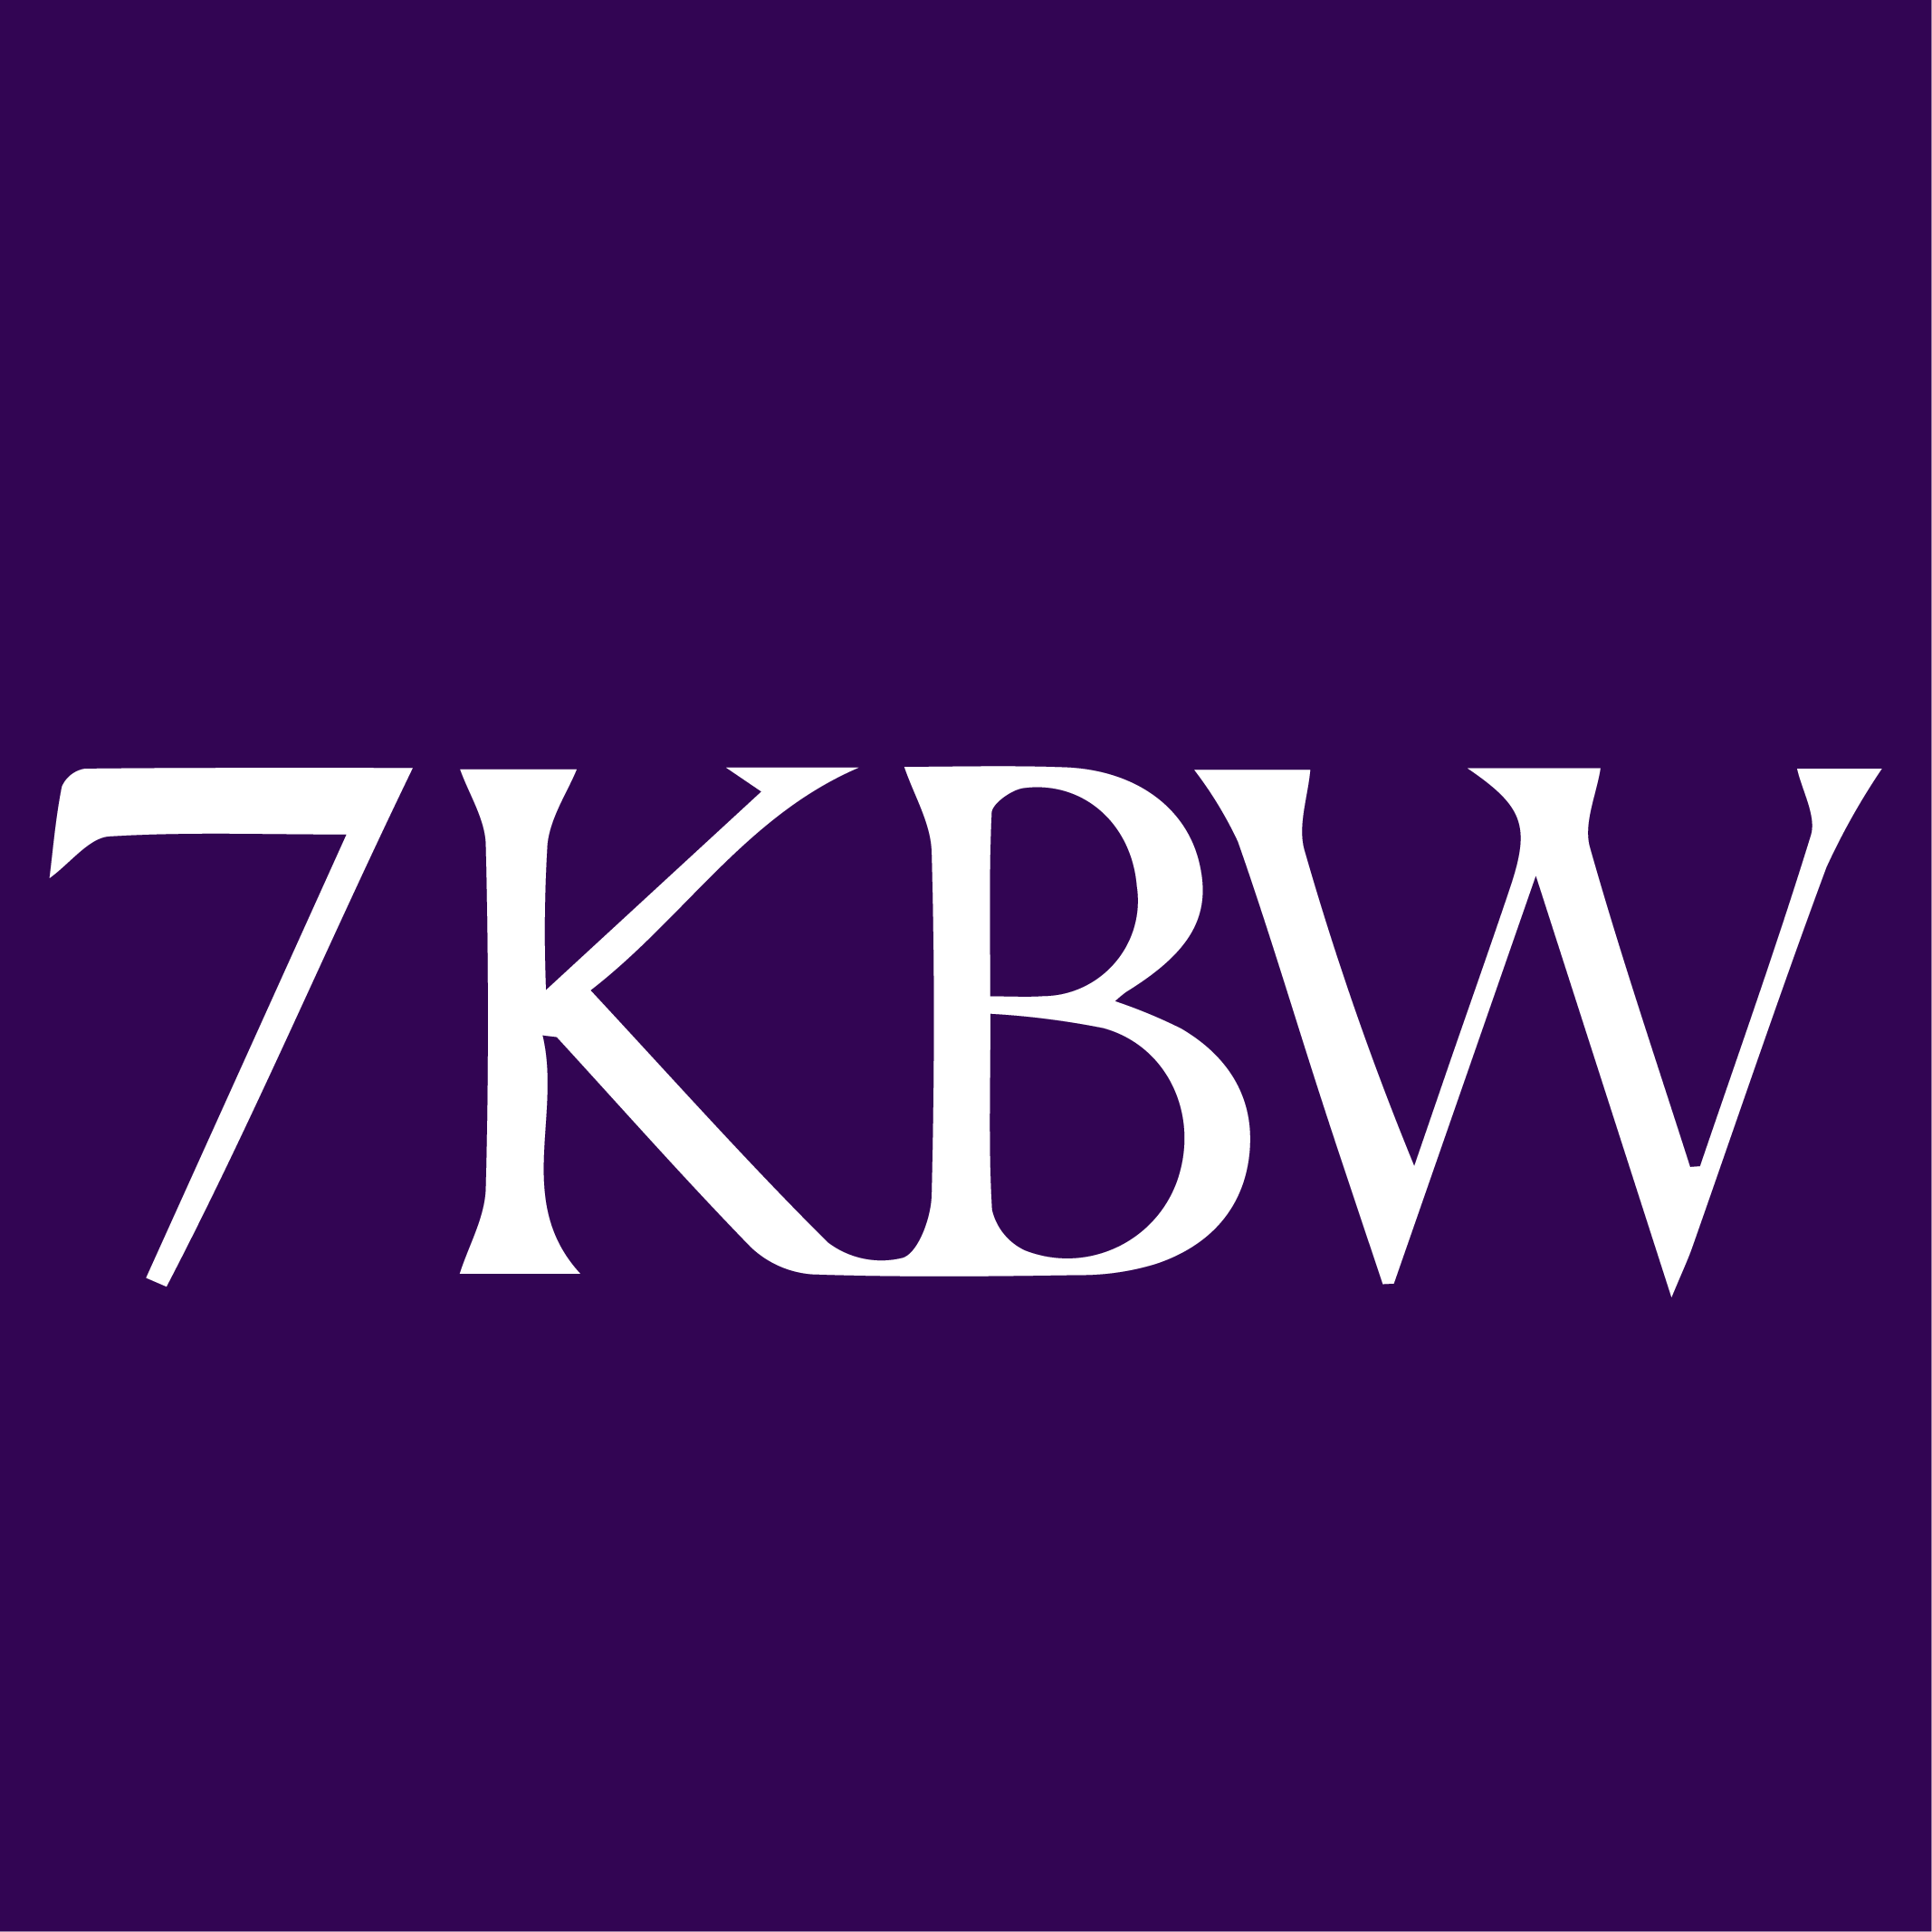 7KBW is ranked as a TOP-TIER set in the latest Legal 500 2017